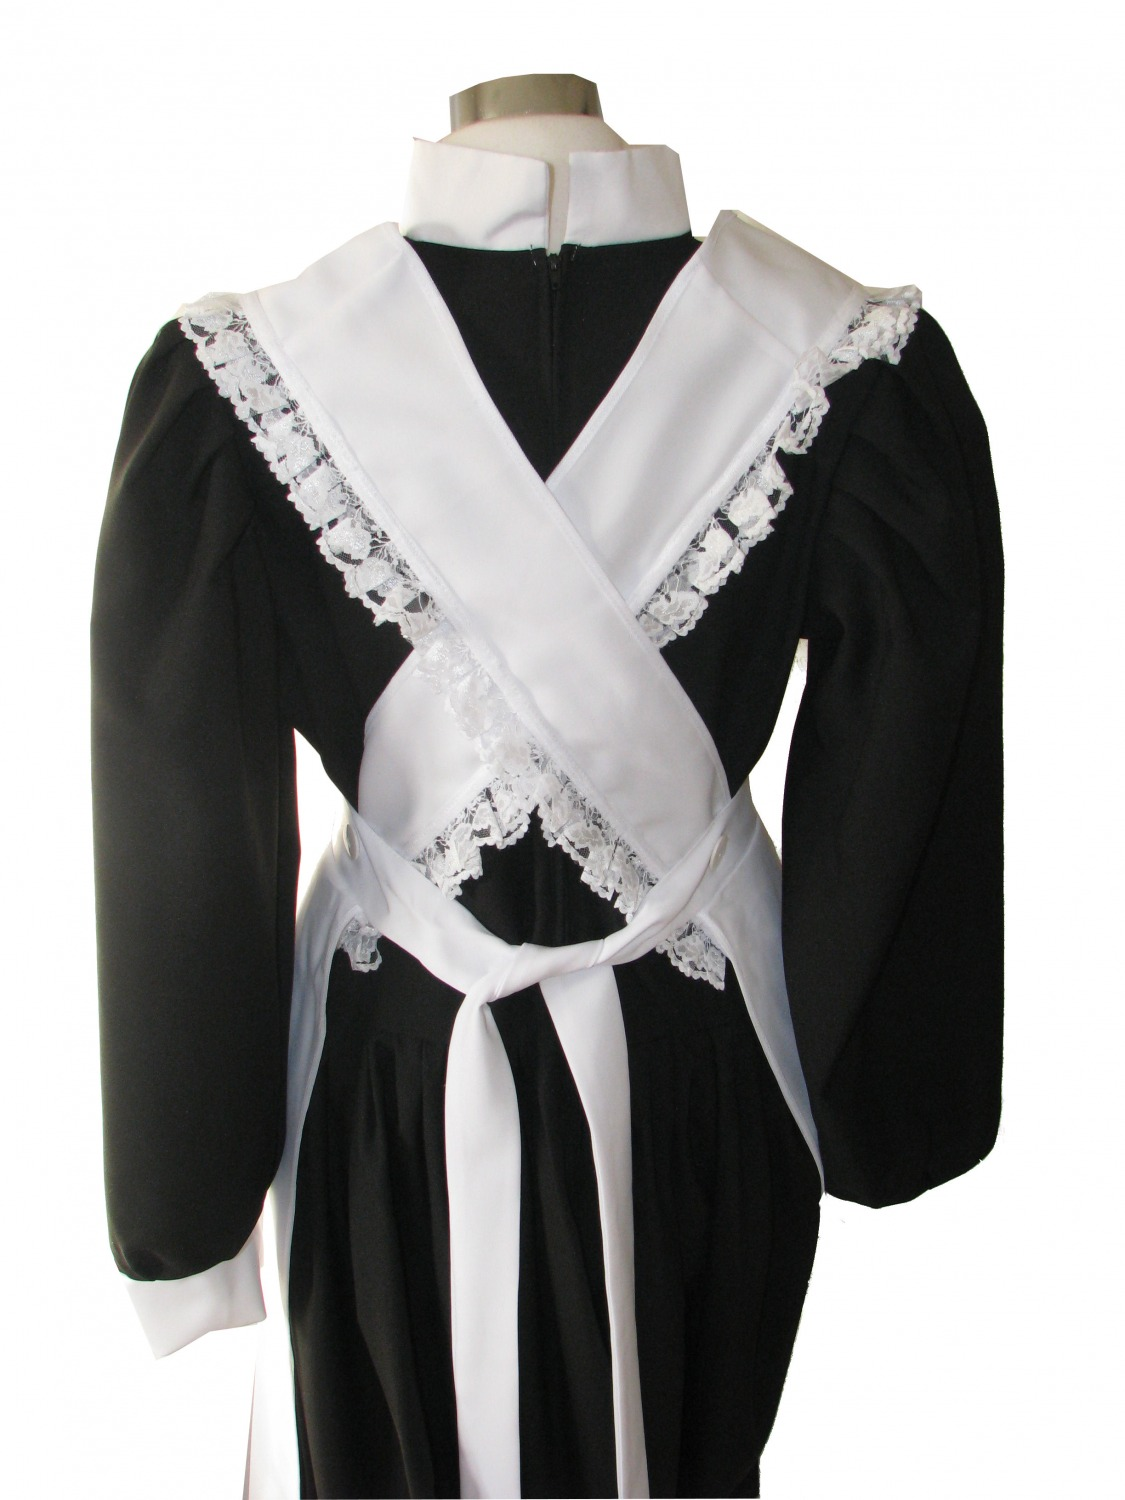 Ladies Victorian Maid Fancy Dress Costume Size 18 - 20 Image  sc 1 st  Complete Costumes & Ladies Victorian Maid Fancy Dress Costume Size 18 - 20 - Complete ...